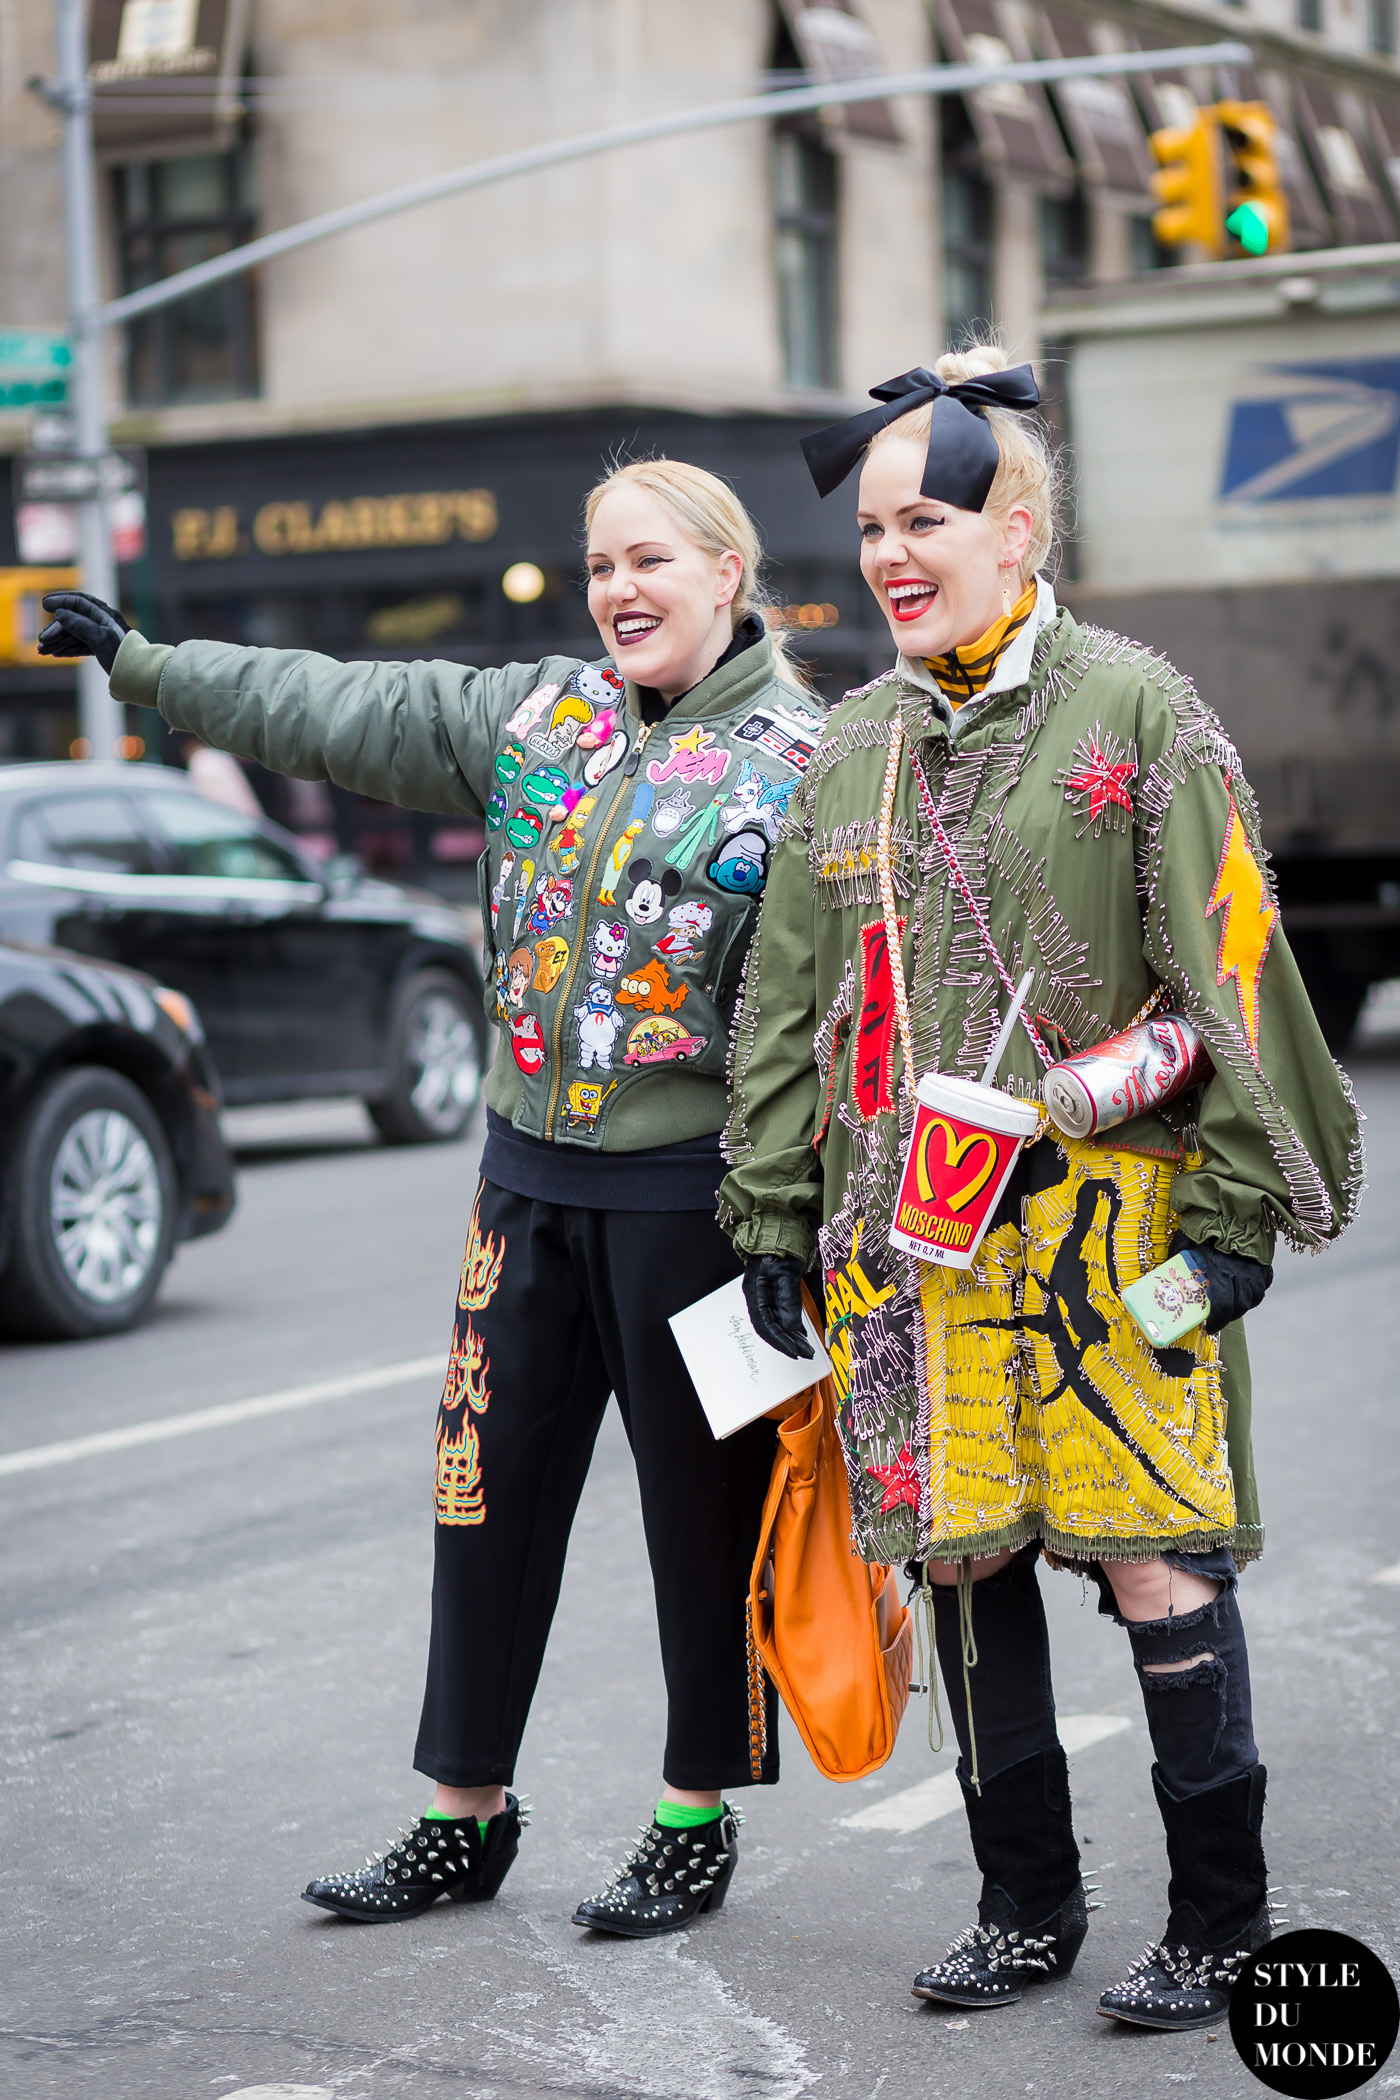 Cailli and Sam Beckerman Street Style Street Fashion Streetsnaps by STYLEDUMONDE Street Style Fashion Blog